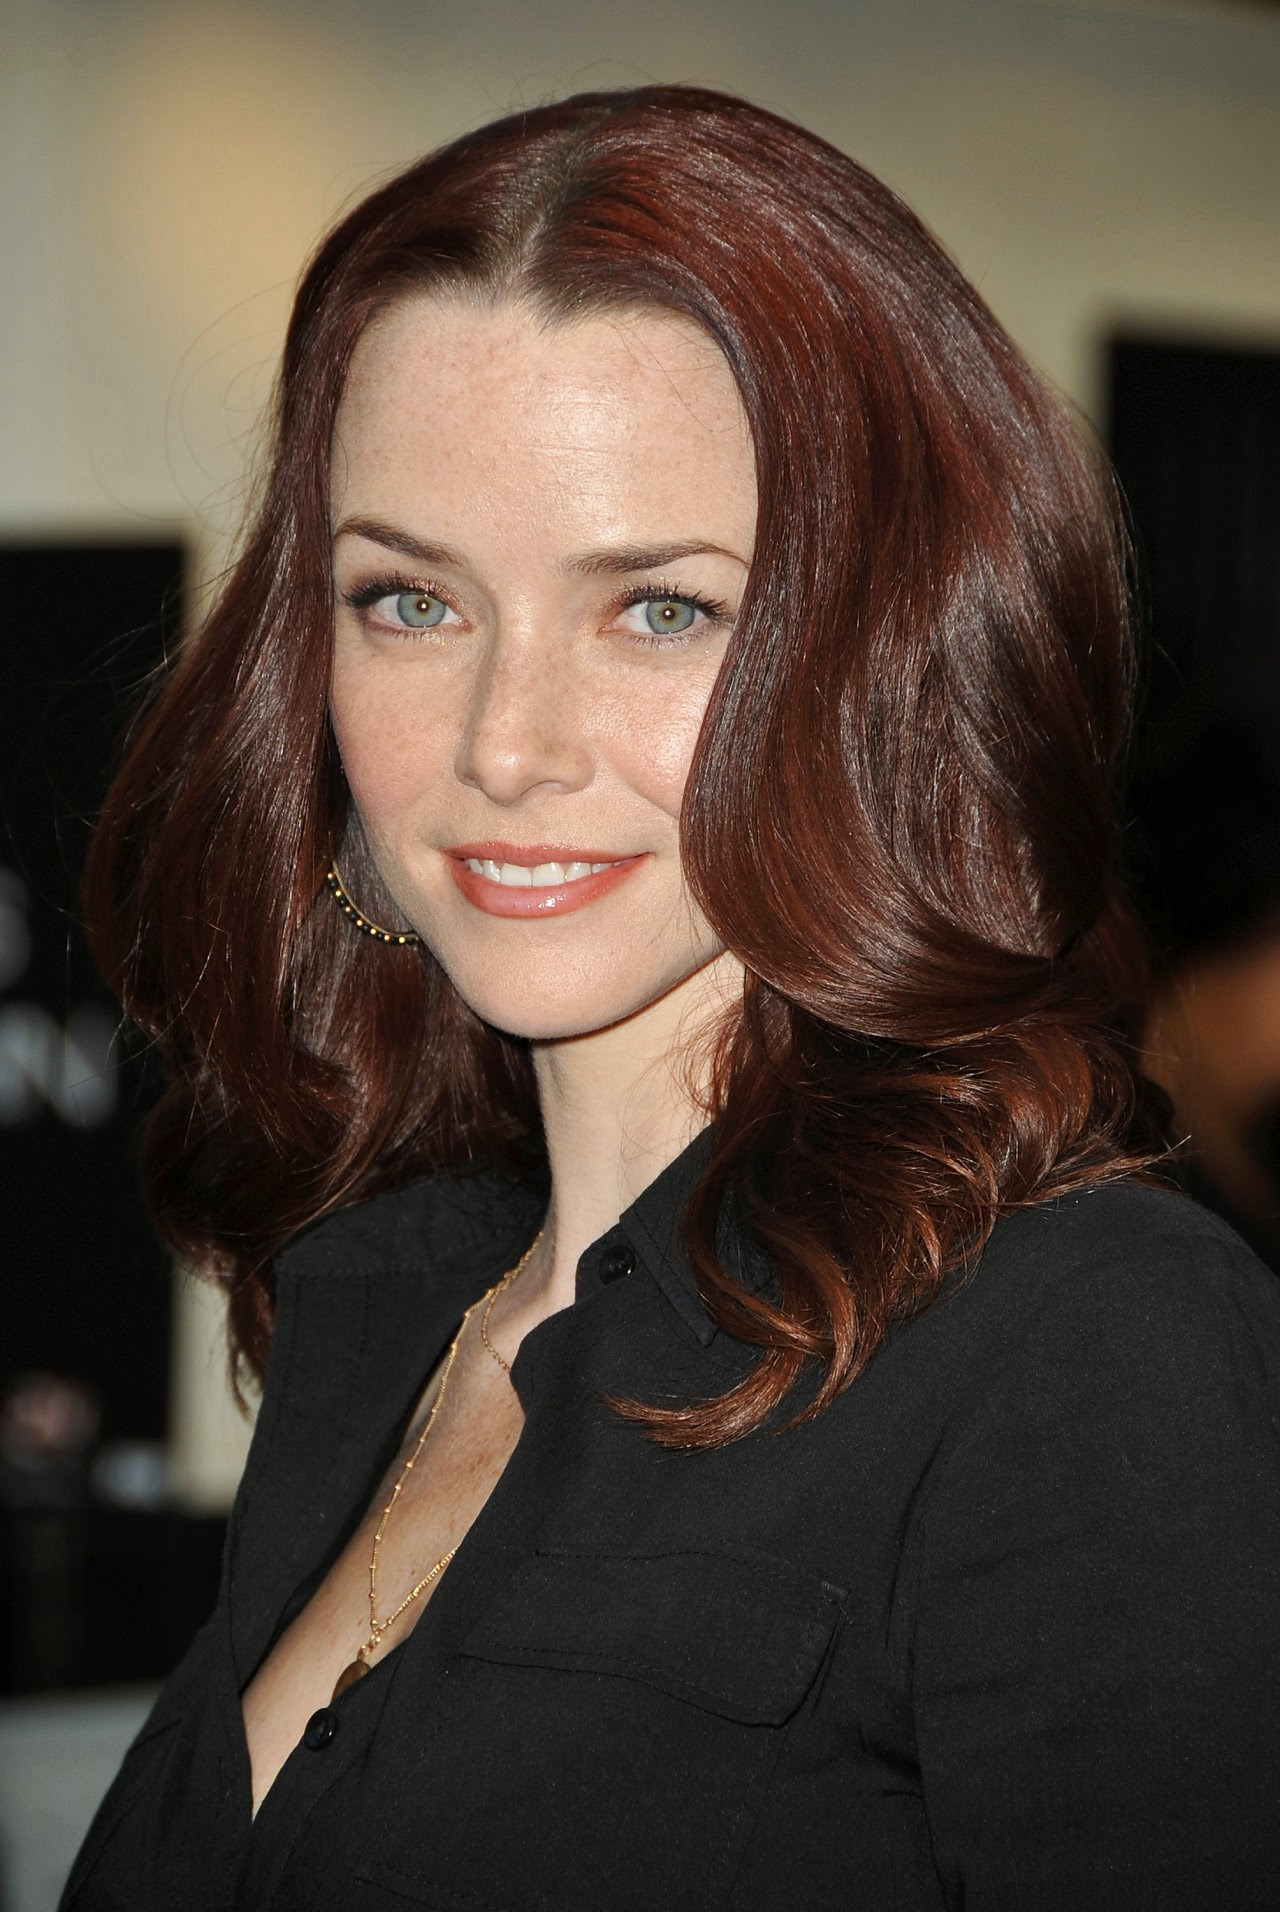 annie wersching - photo #18